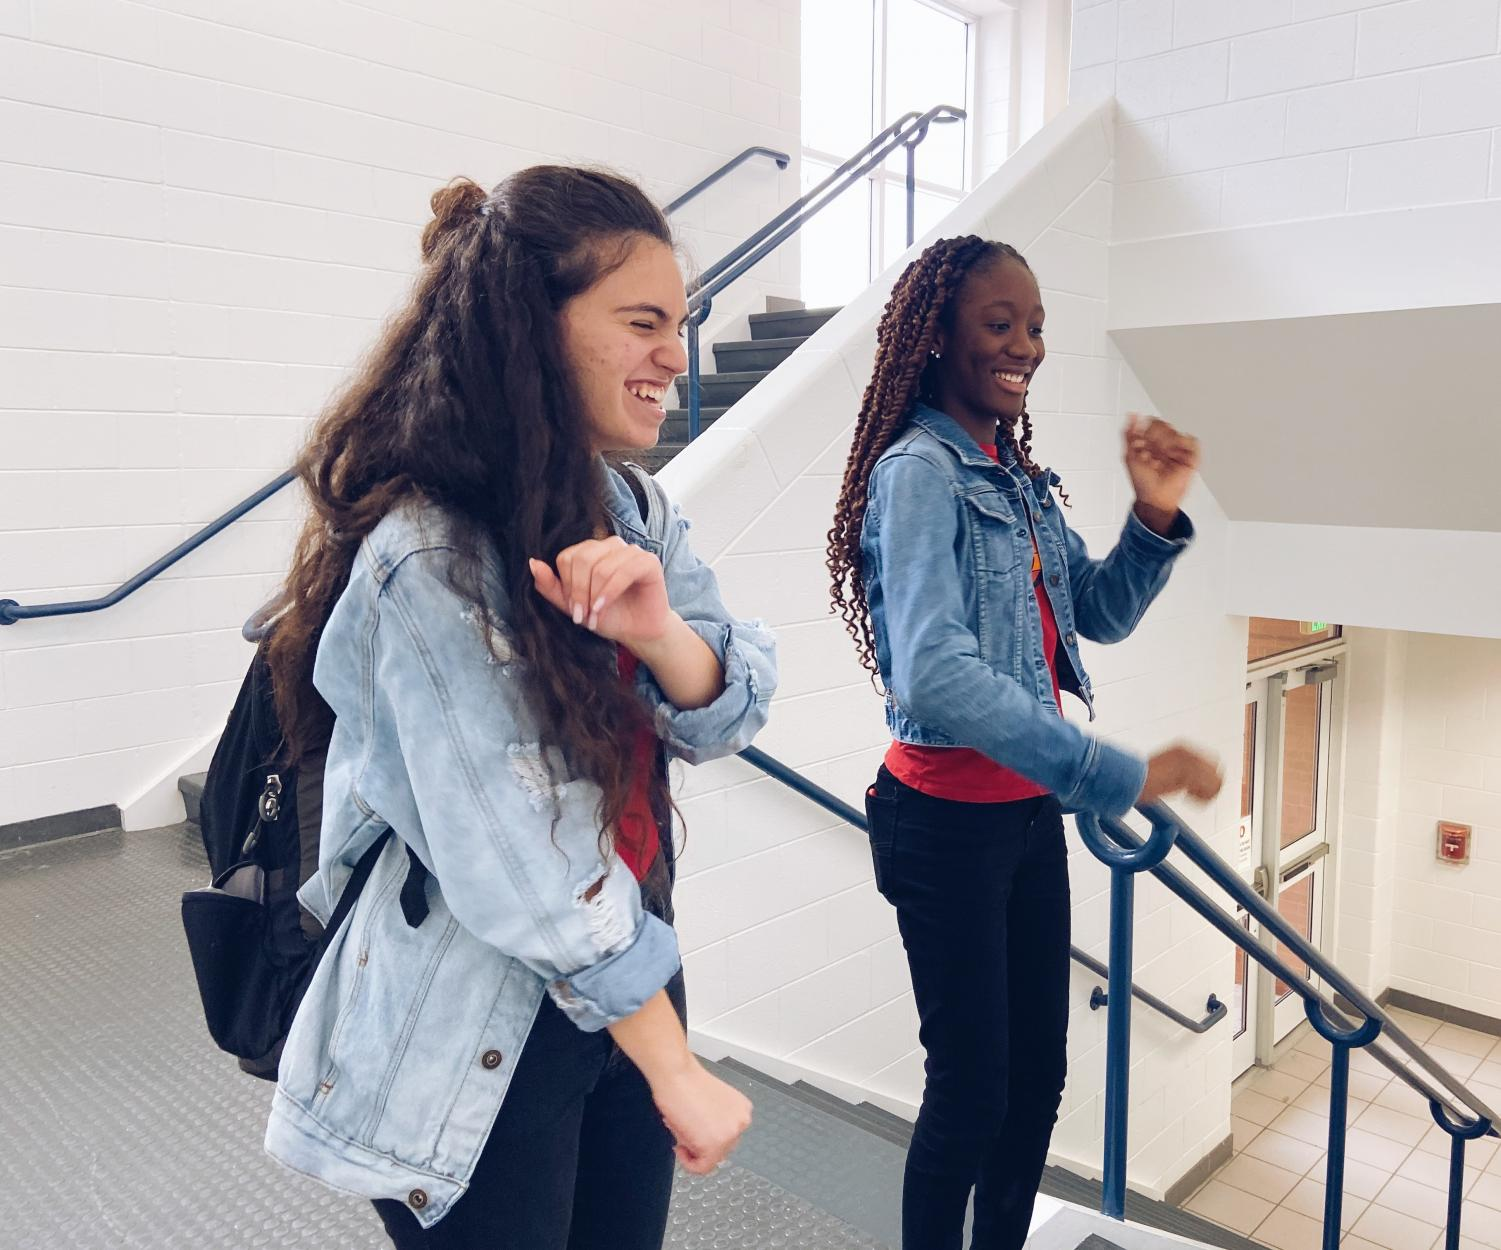 """In the stairway, sophomores Leiale Demant and Amba May-Parker dance to """"Renegade"""" for a TikTok on Dec. 12. Photo by Abby Asimos."""